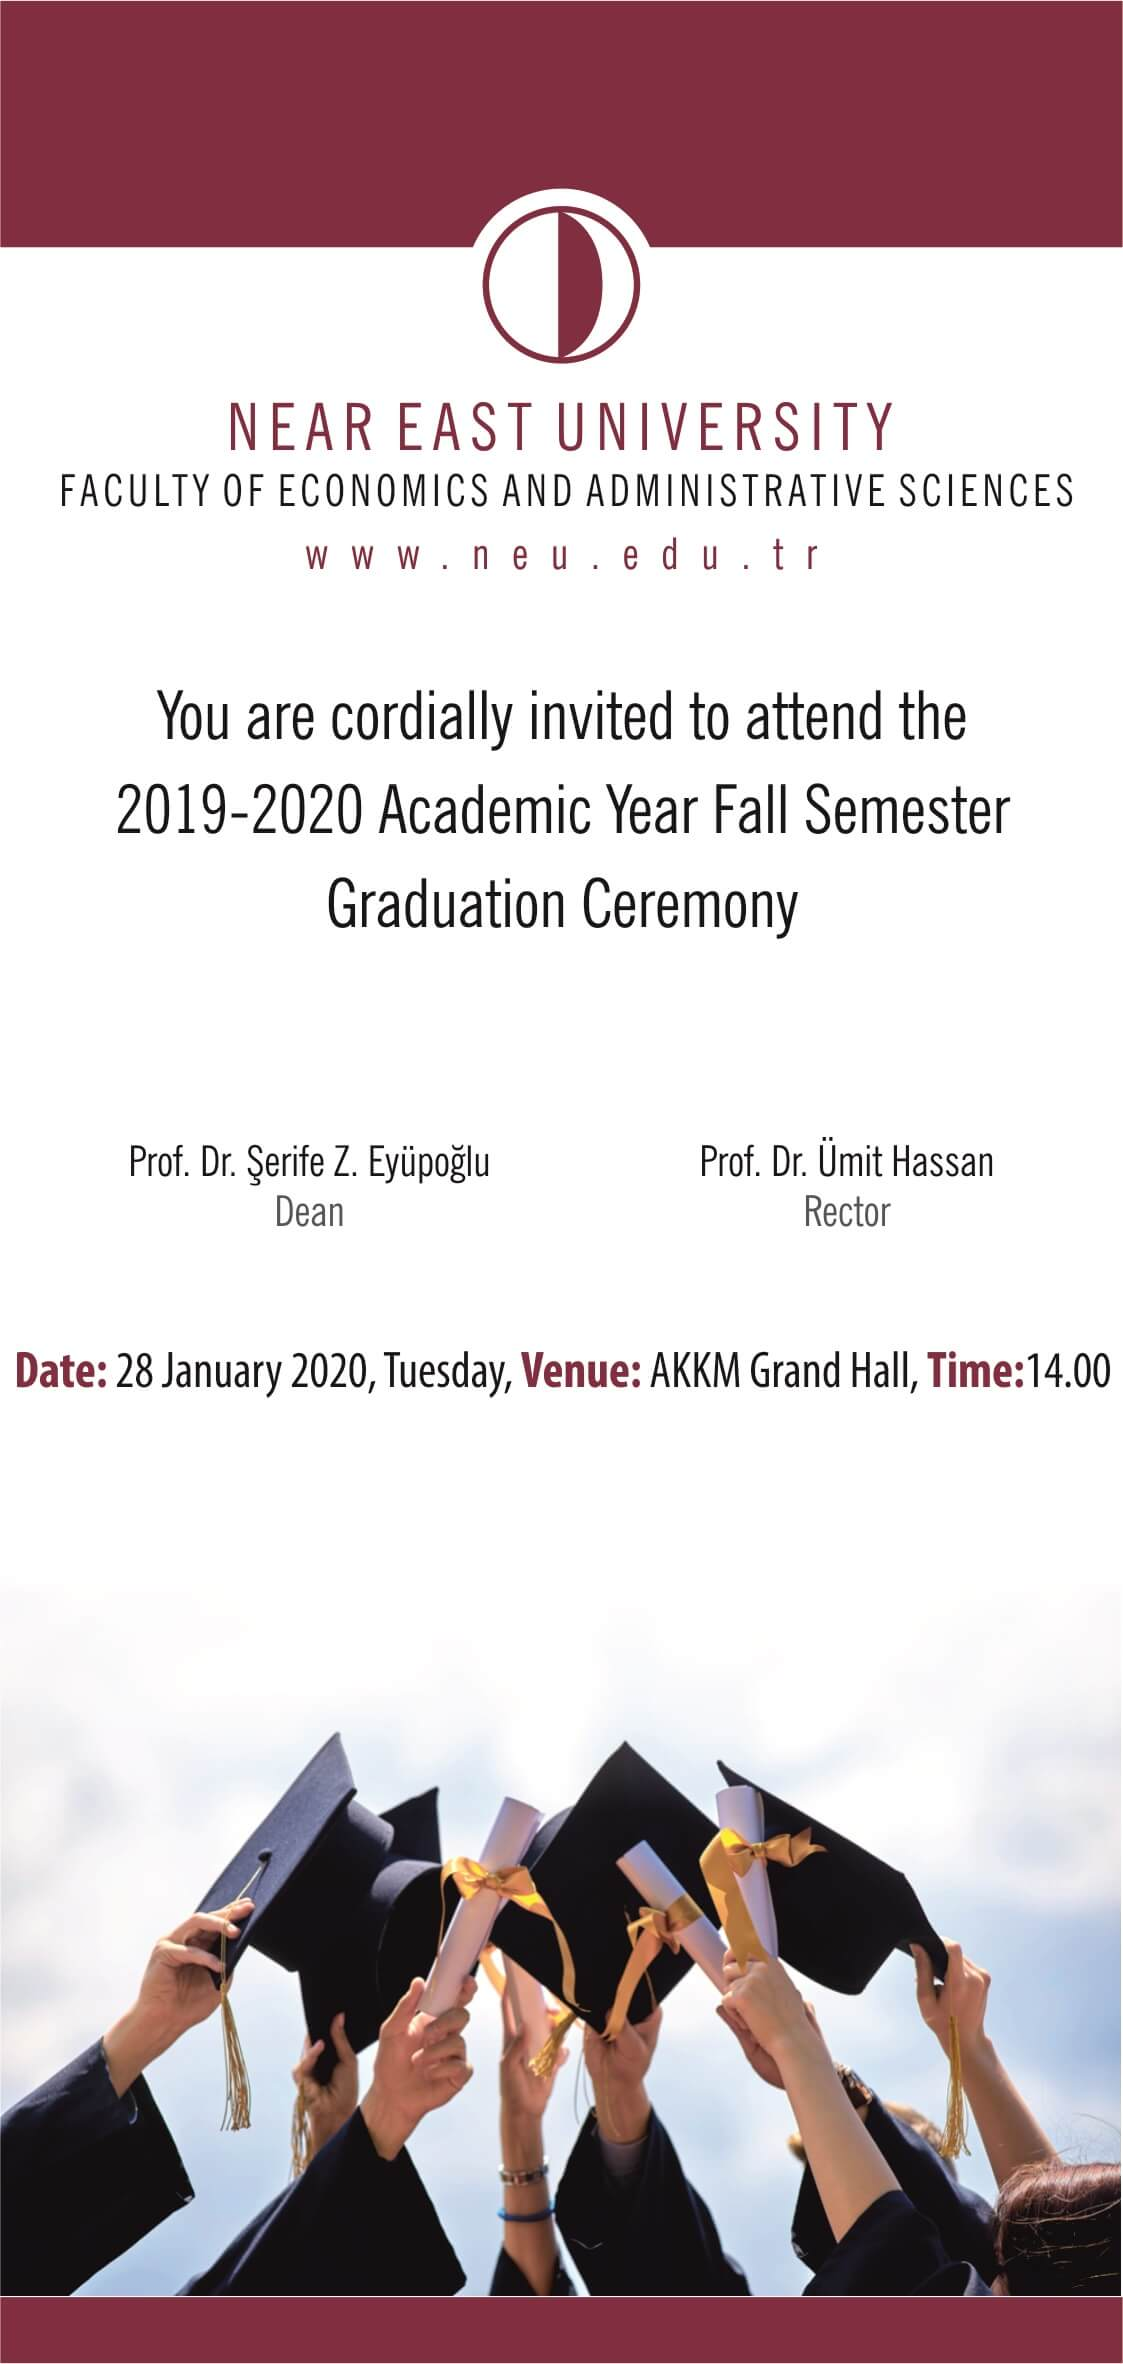 2019-2020 Academic Year Fall Semester Faculty of Economics and Administrative Sciences Graduation Ceremony